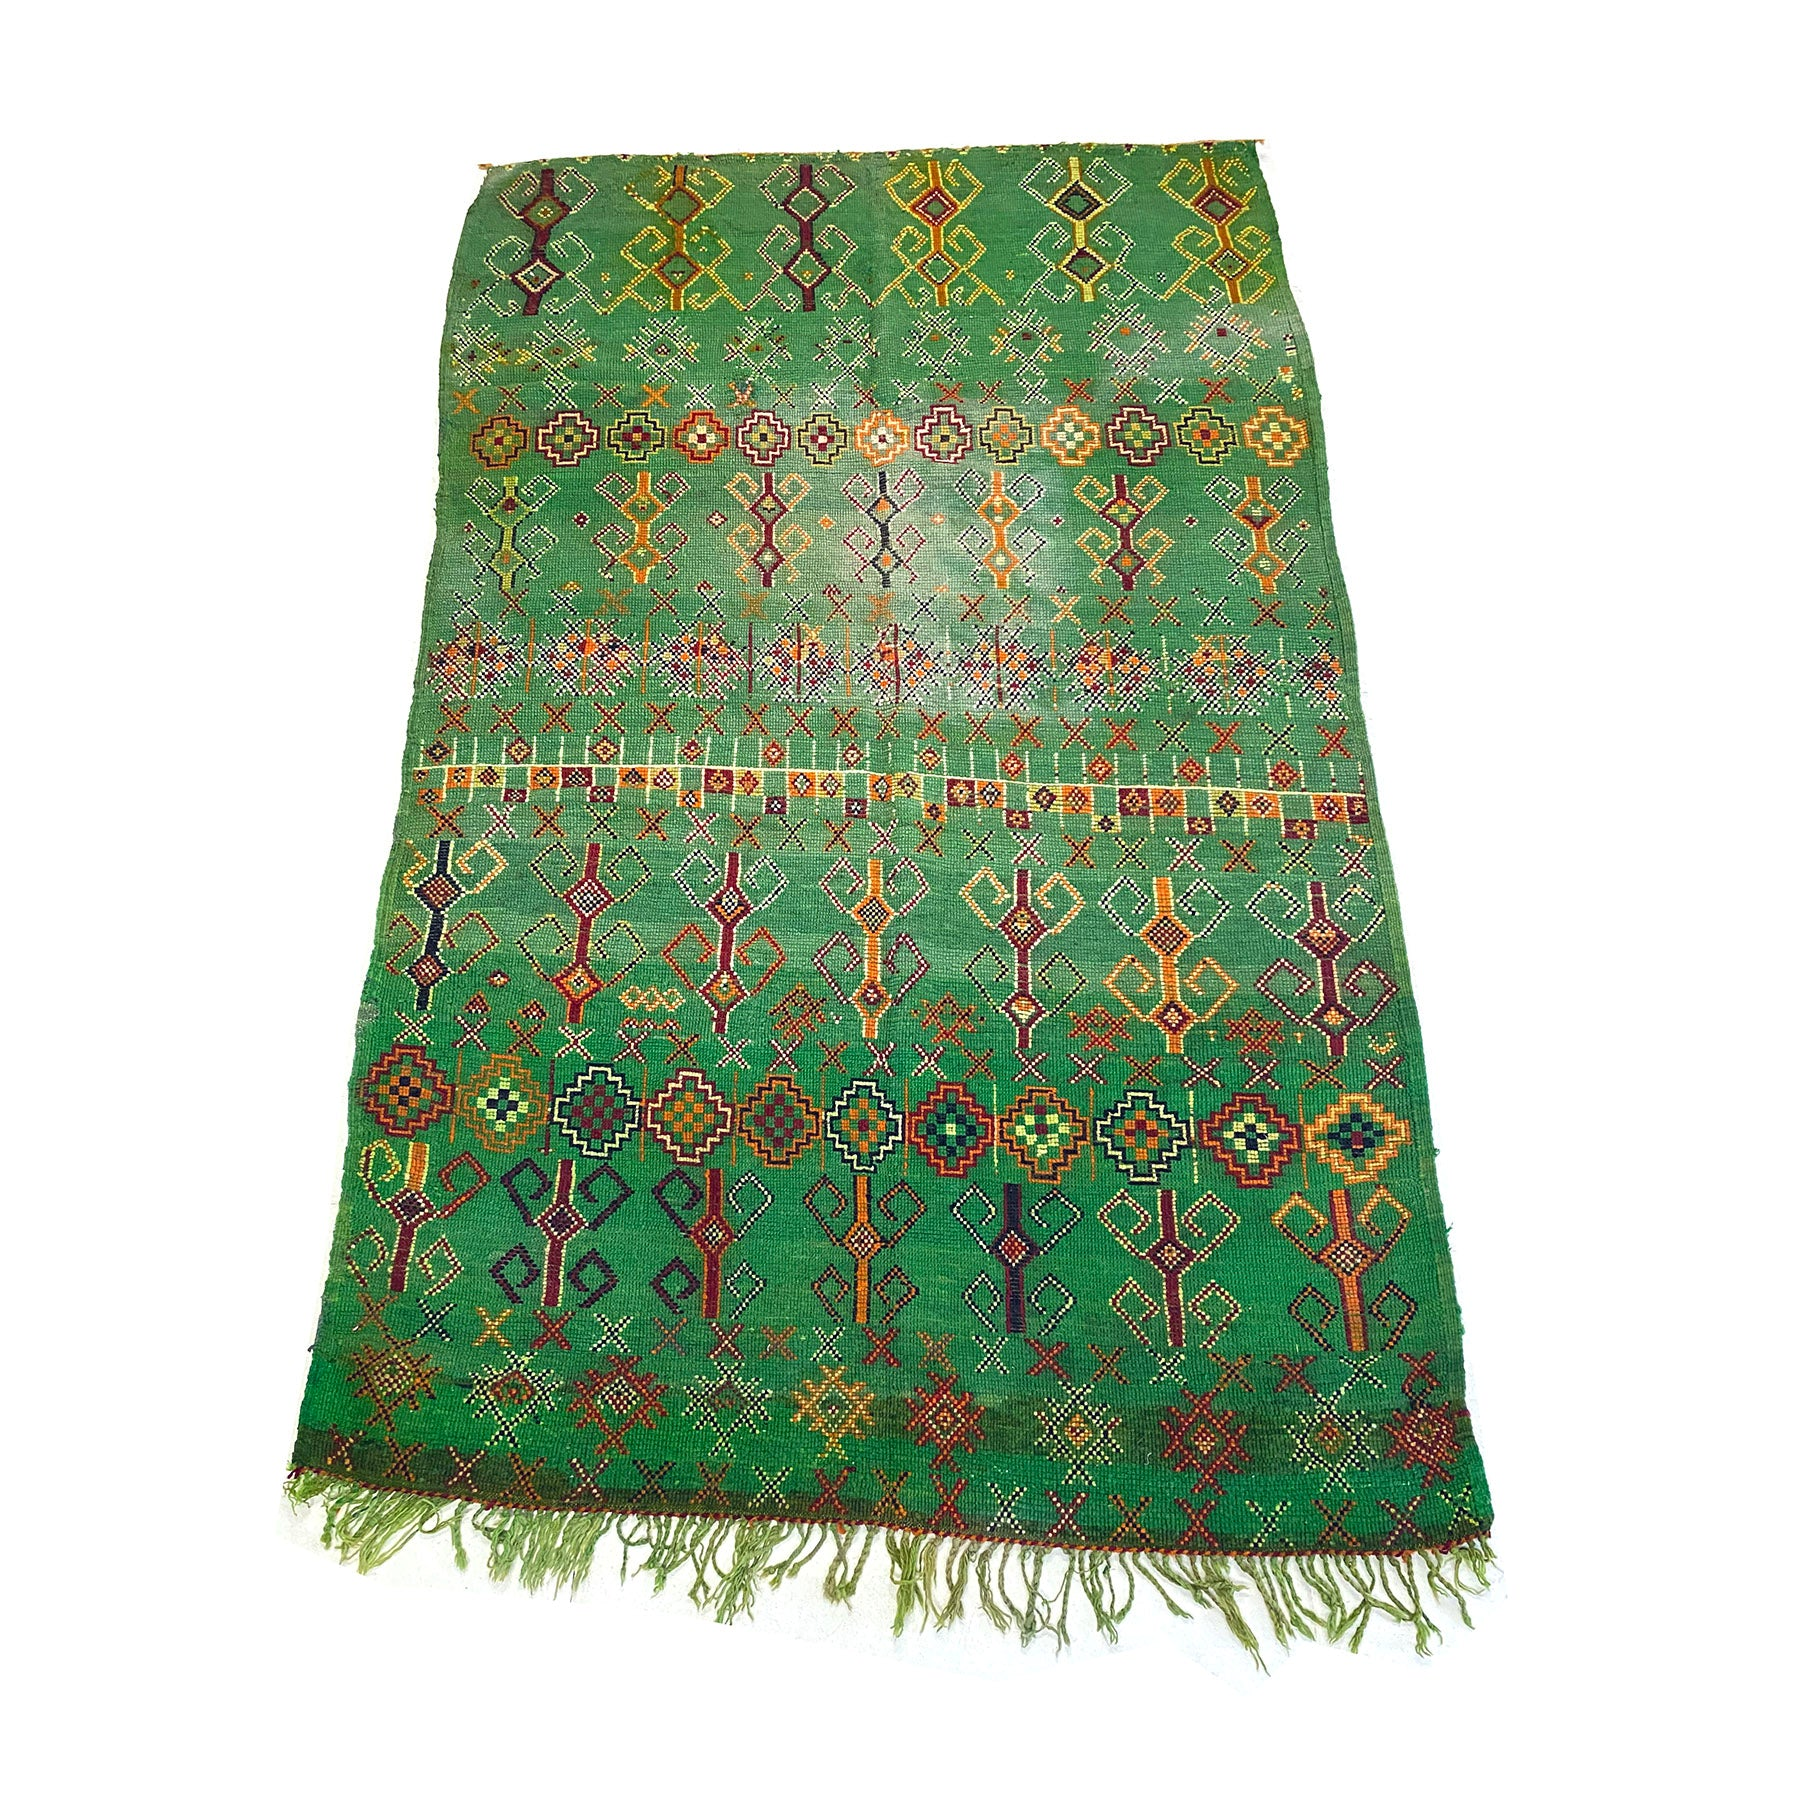 Handknotted wool berber carpet in kelly green with colorful pattern design - Kantara | Moroccan Rugs